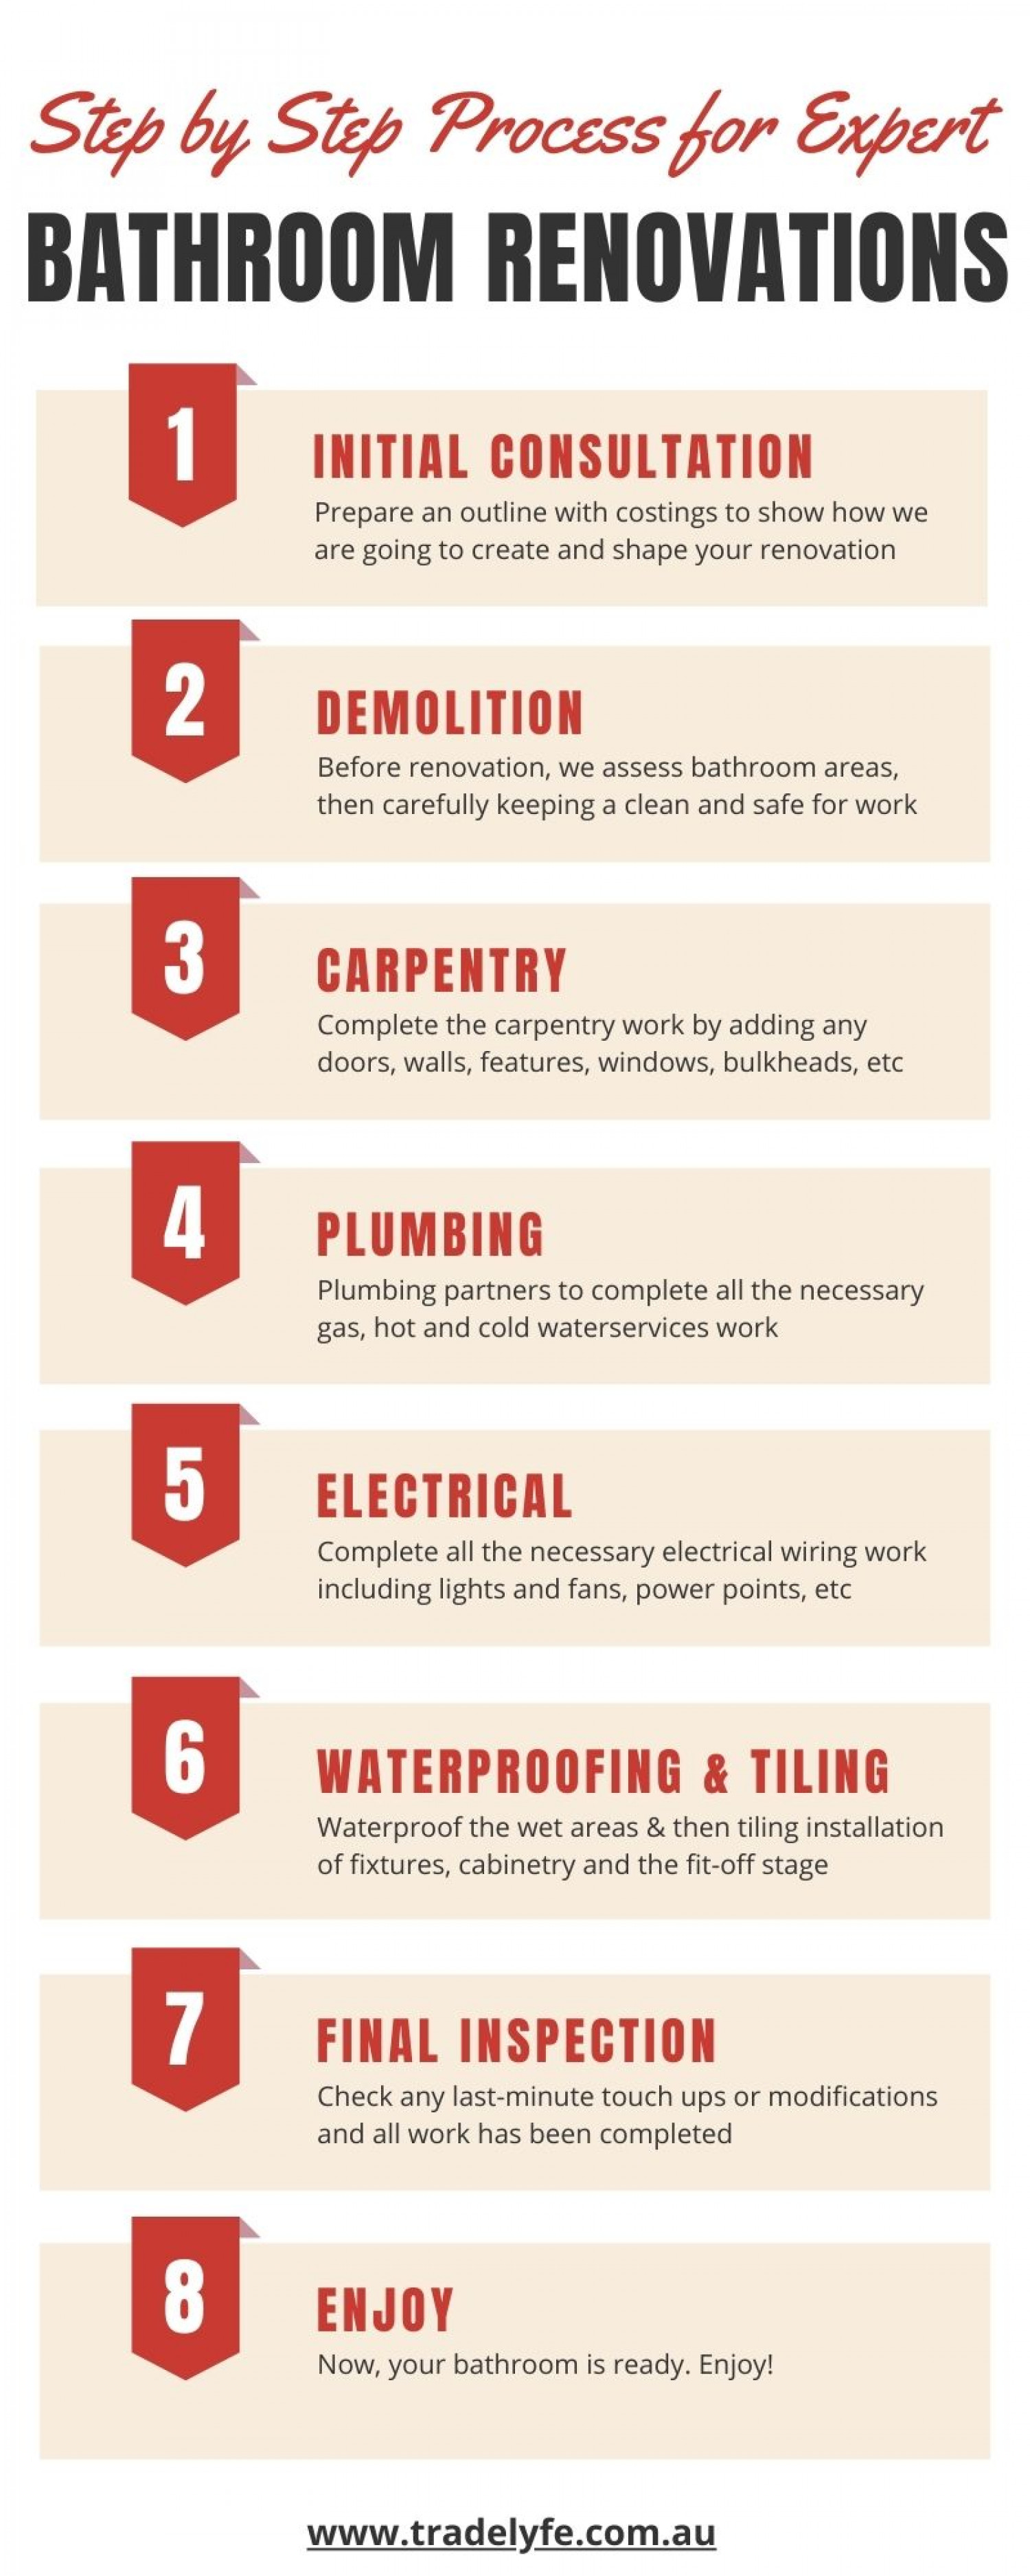 Step by Step Process for Expert Bathroom Renovations Infographic